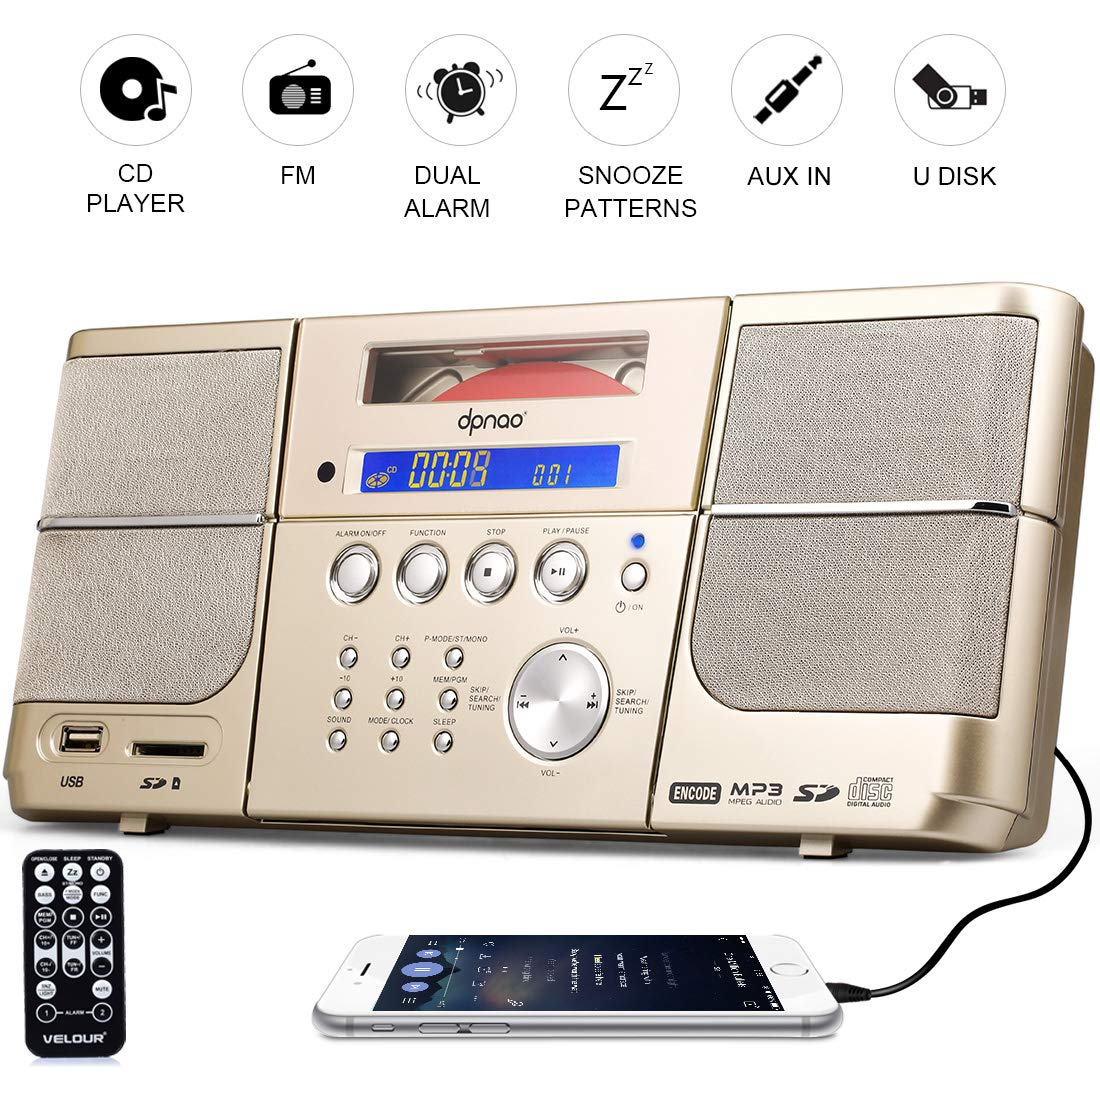 Portable Cd Playerboombox Dpnao With Headphones Jack Mdisk Headset Super Boom J278 Fm Radio Clock Usb Sd And Aux Gold For Kids Laptop Electronics